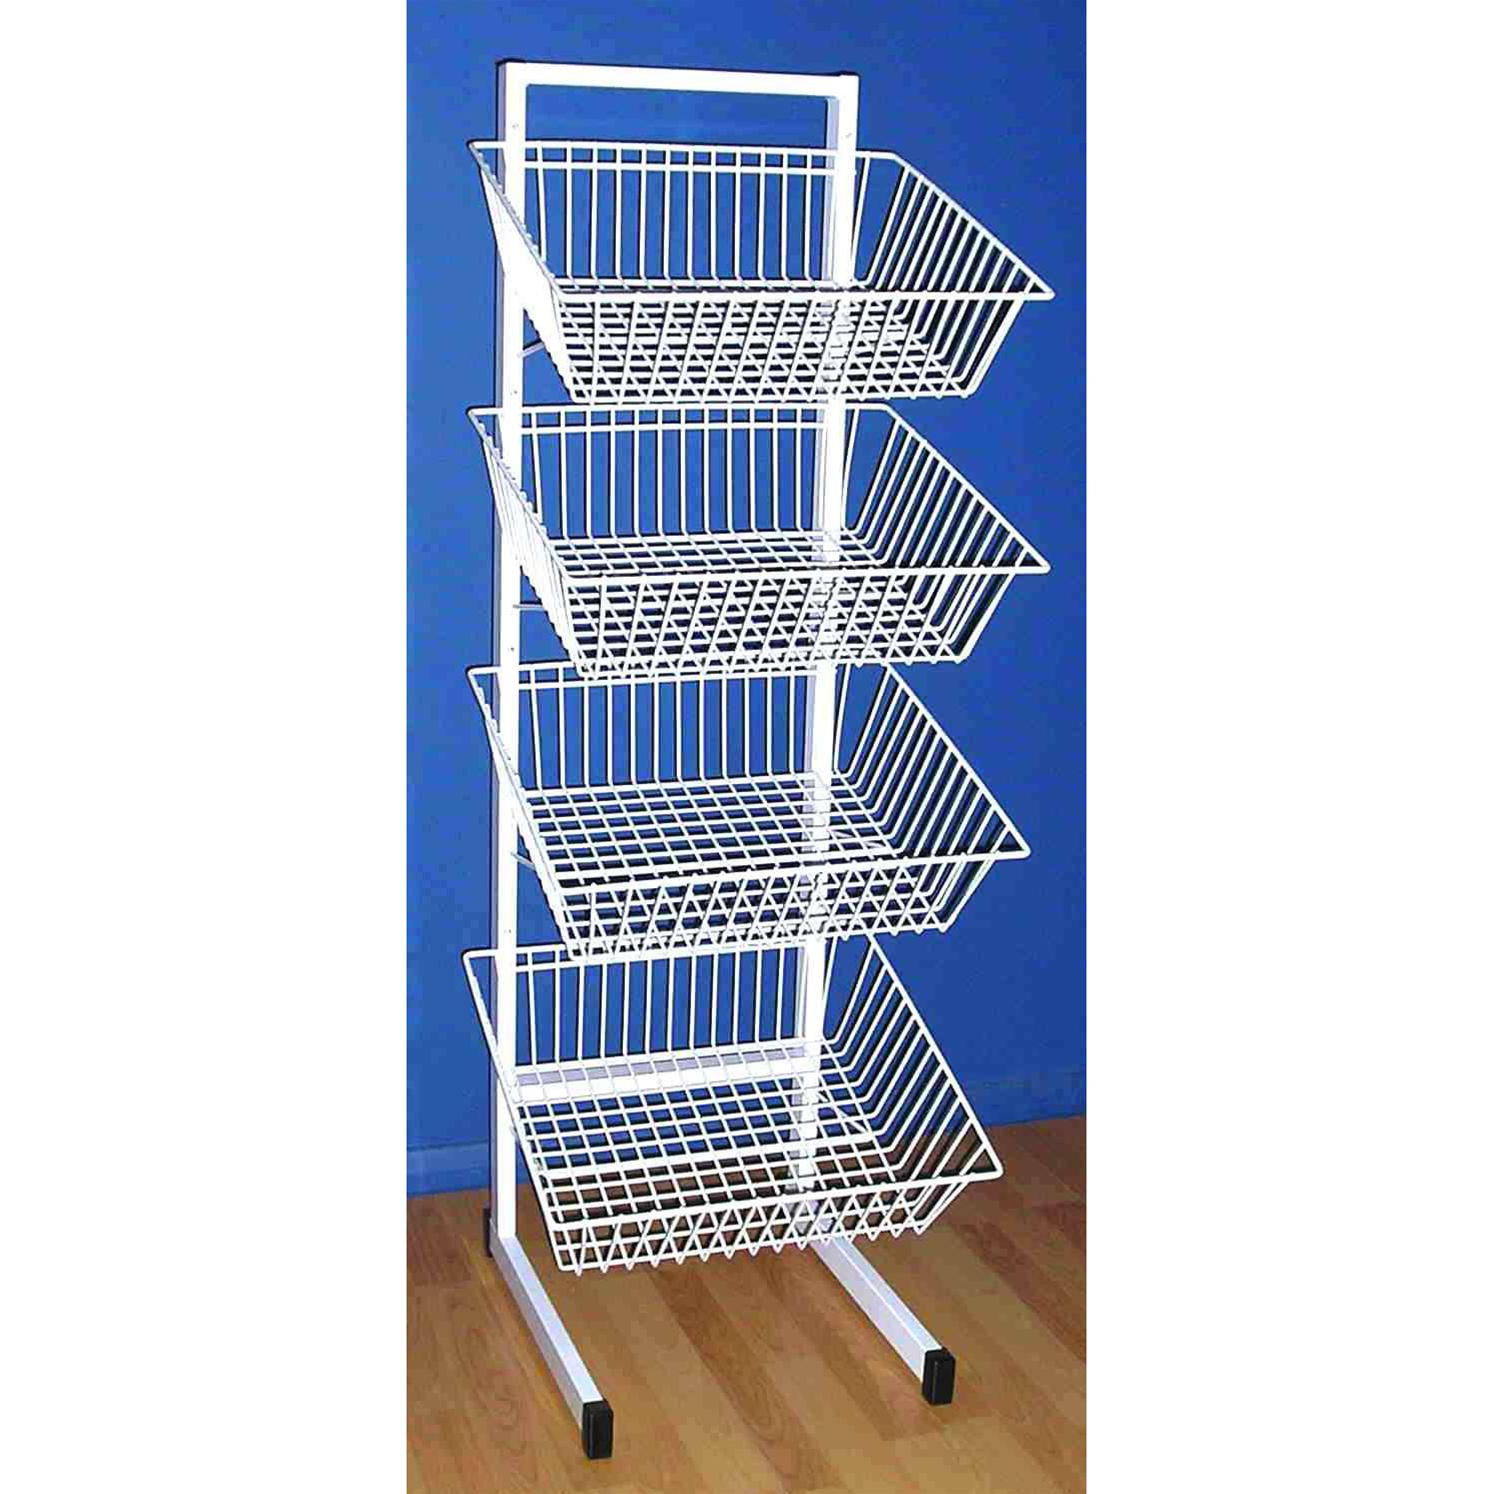 4 Tier Stand (4 baskets)